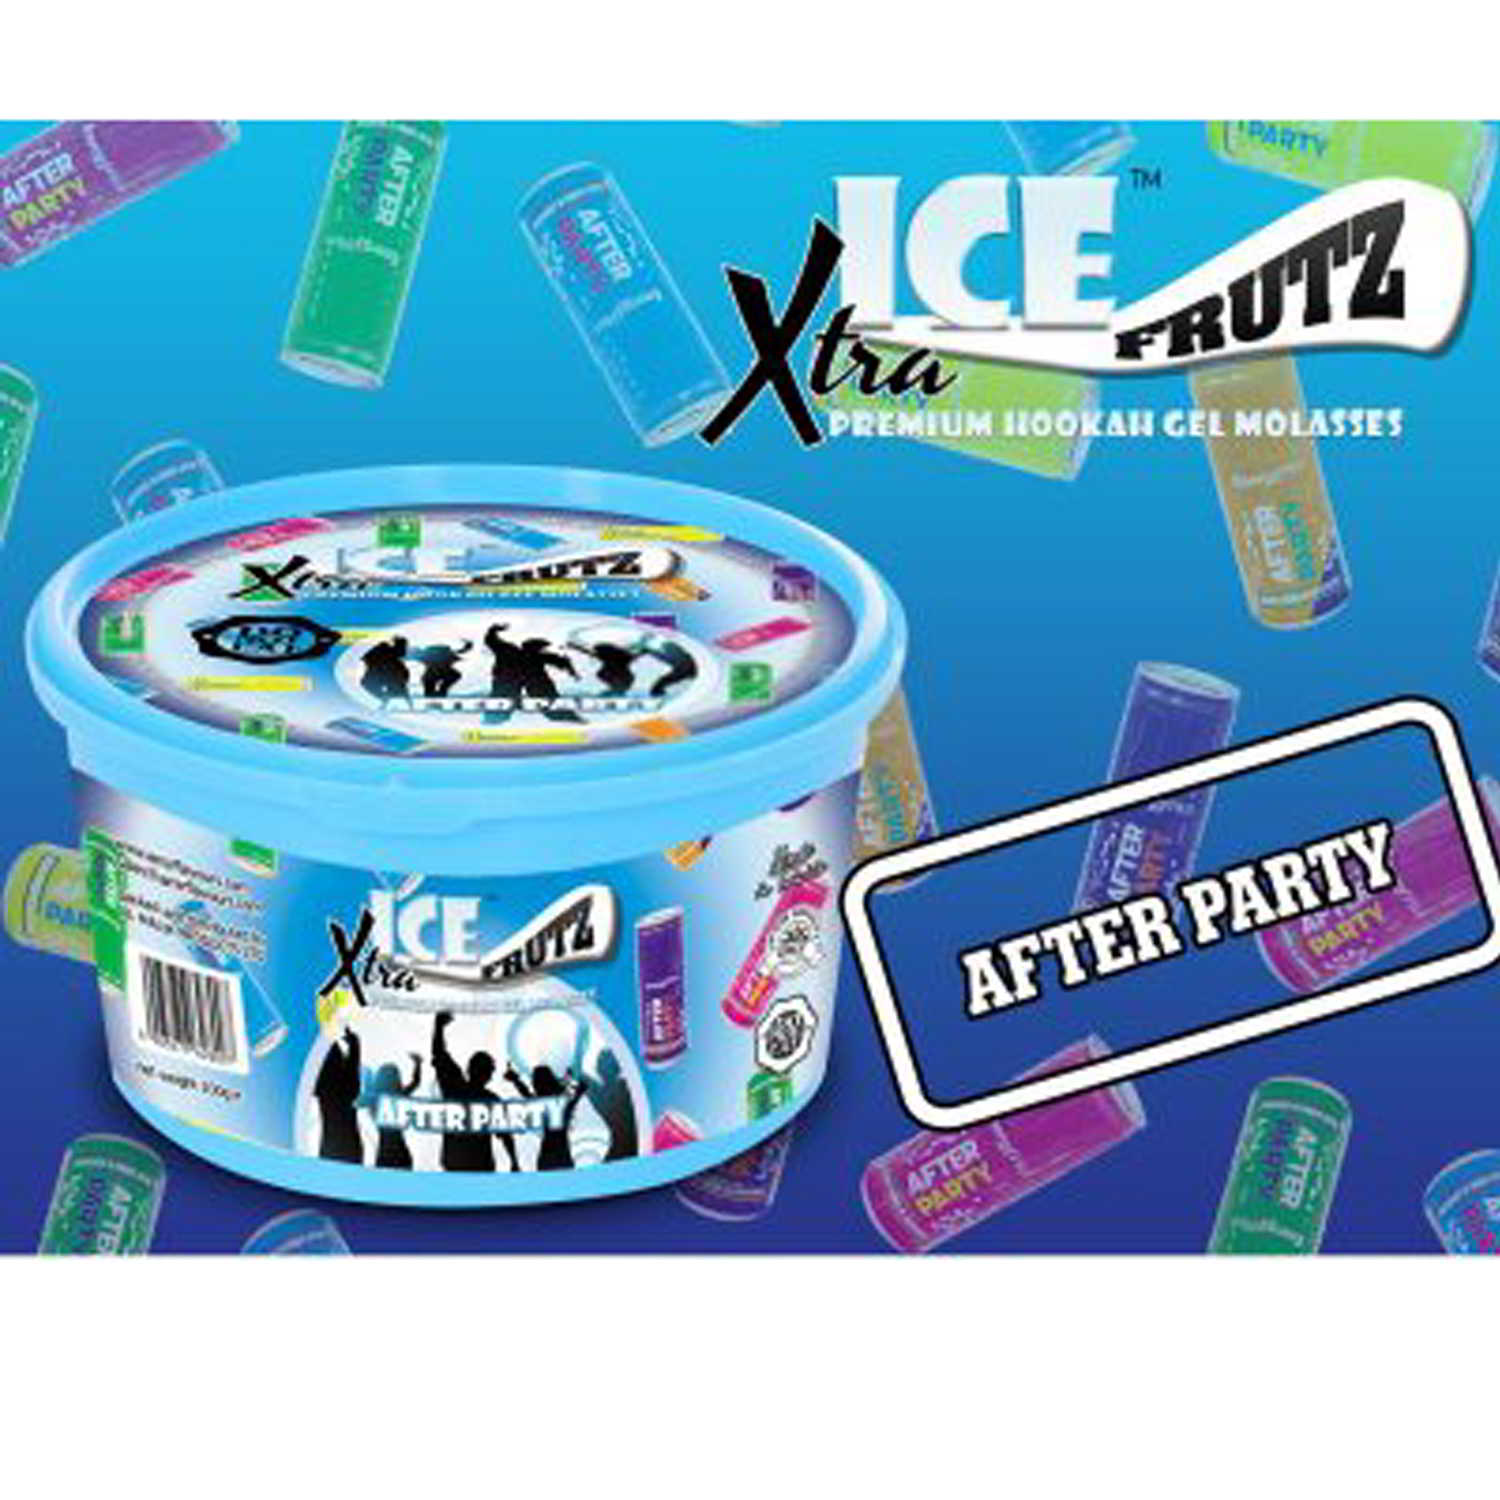 Gel ICE FRUTZ Xtra – 100 g. – After Party